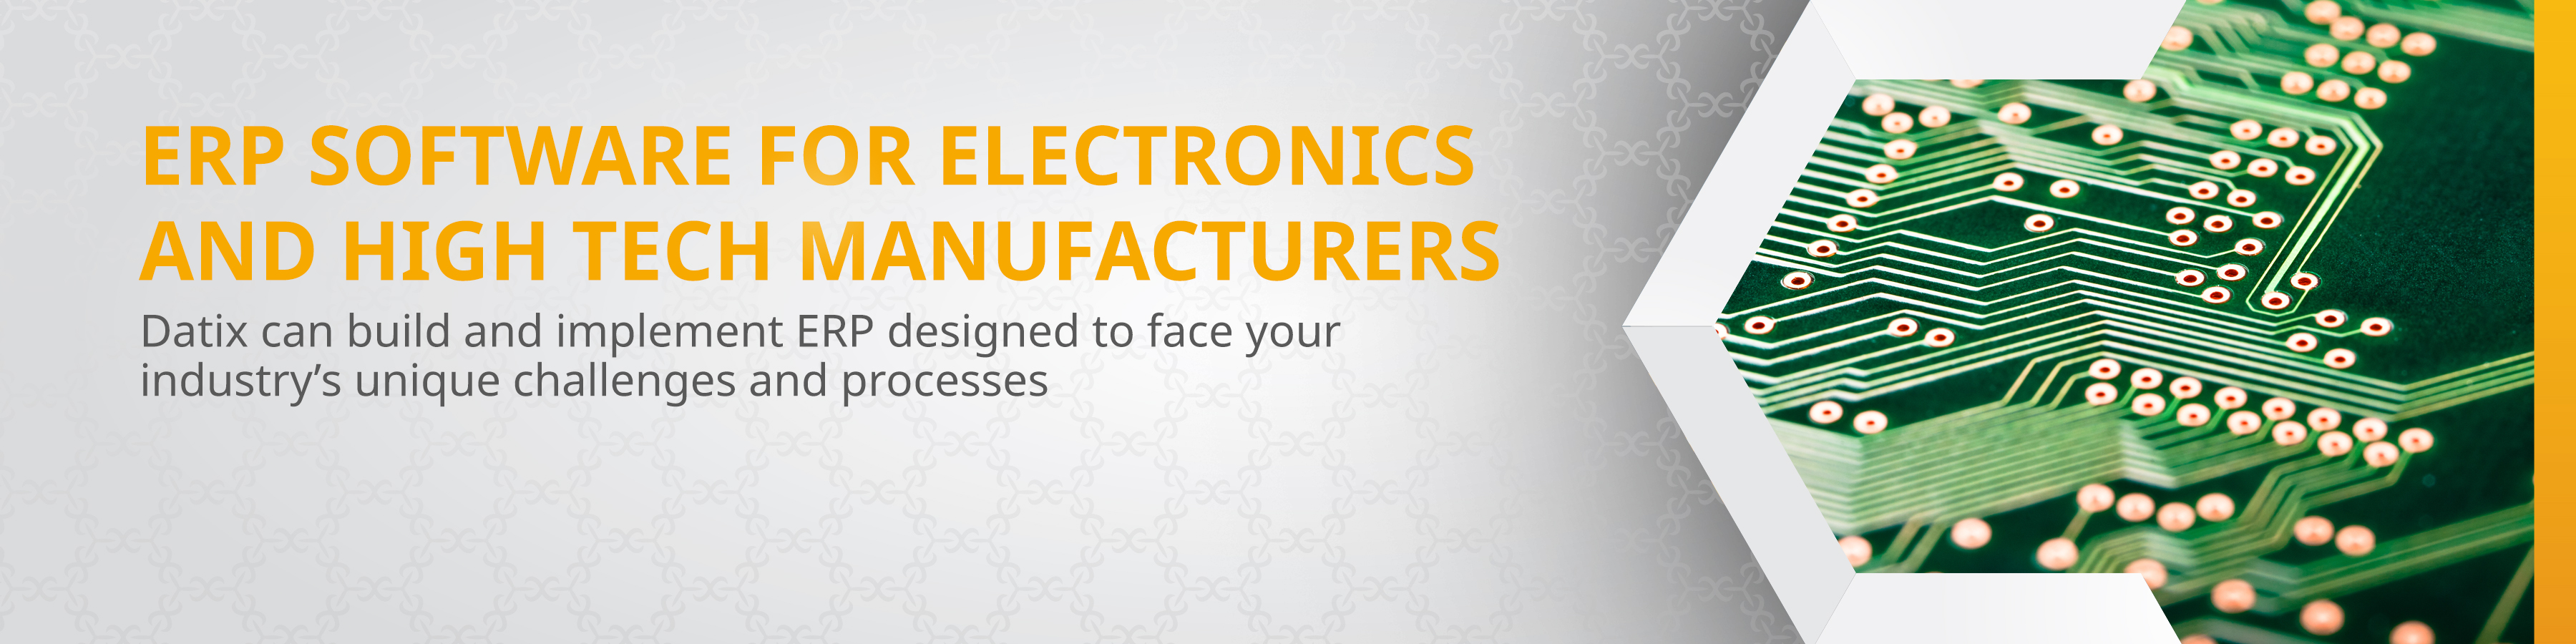 Electronics and High Tech Manufacturing ERP